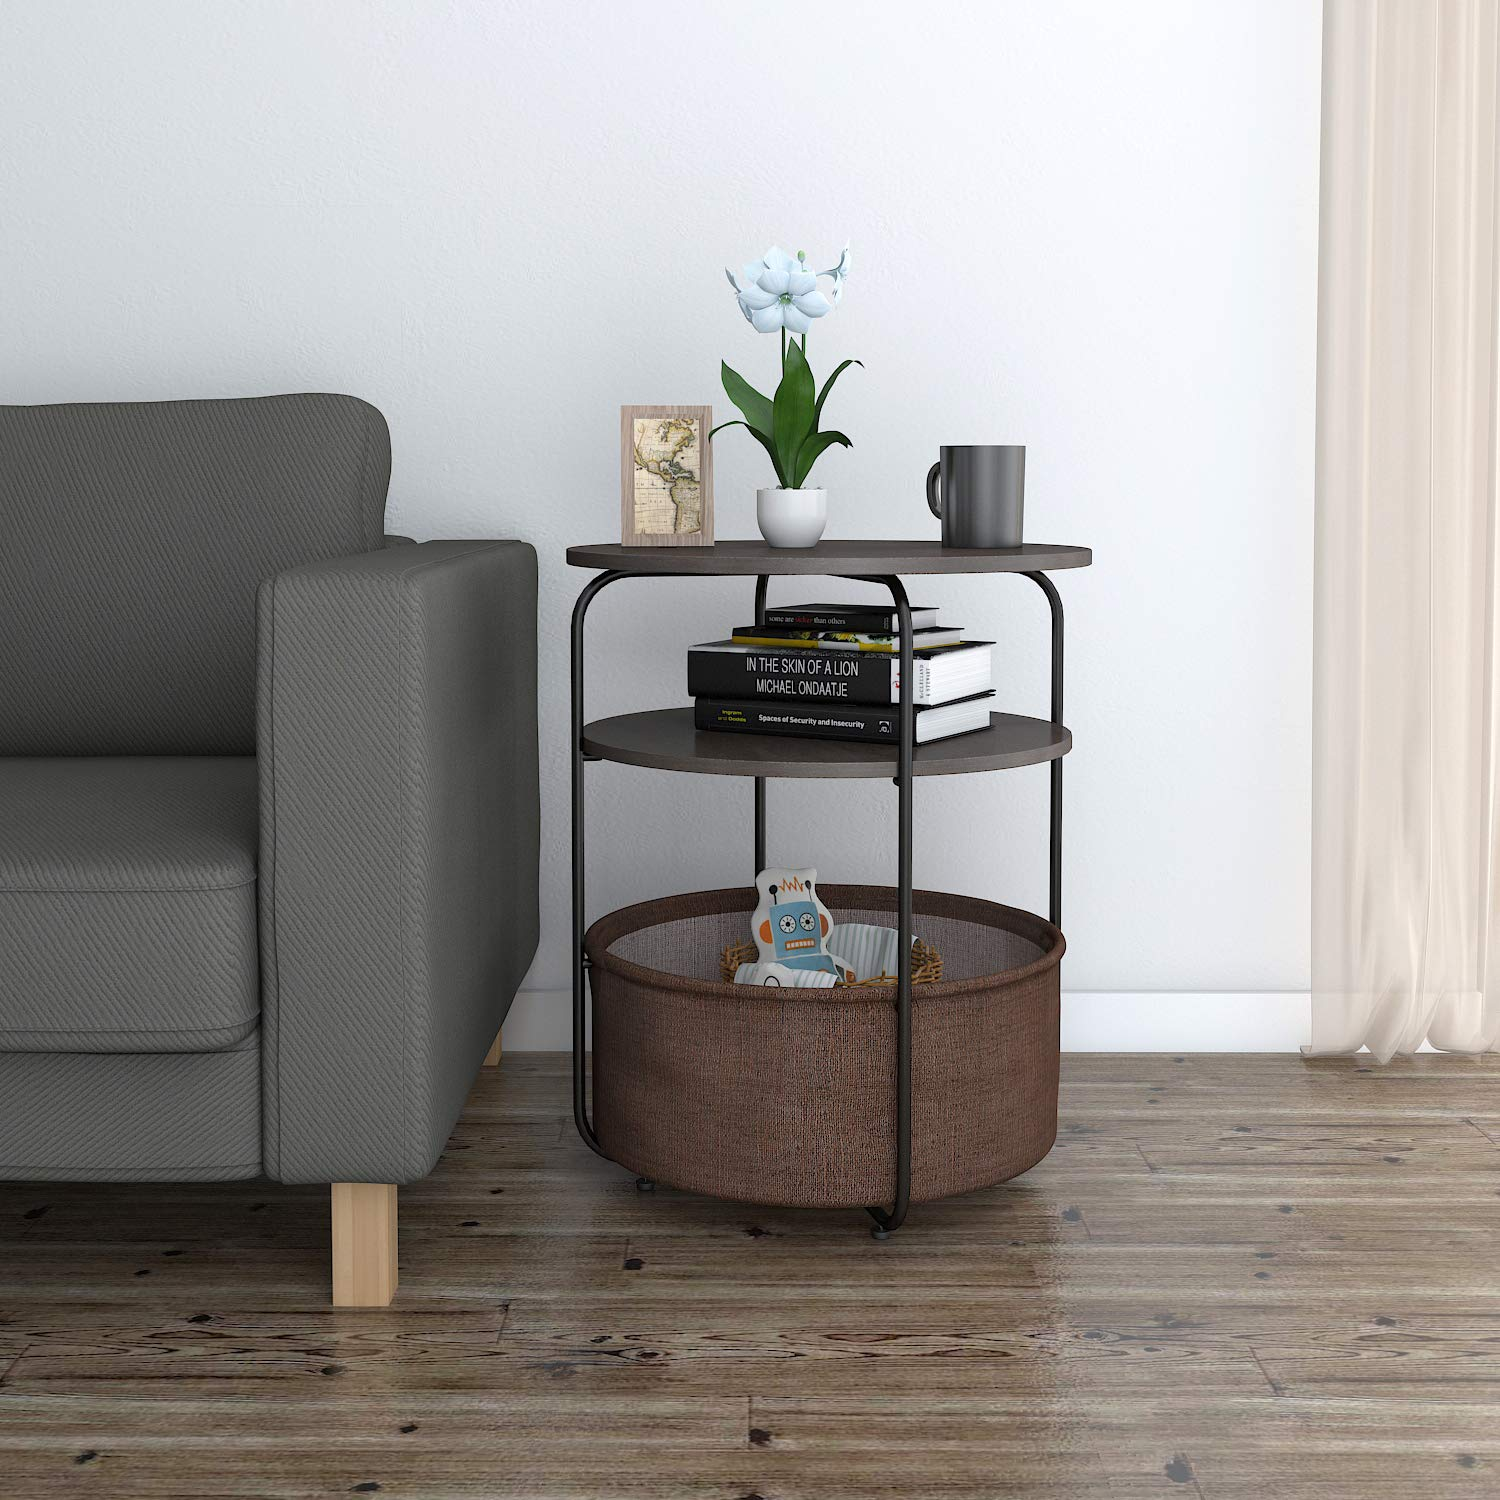 Lifewit Round Side Table End Table with Fabric Storage Basket in Livingroom, Nightstand in Bedroom, Super Easy to Assemble, Drak Brown by Lifewit